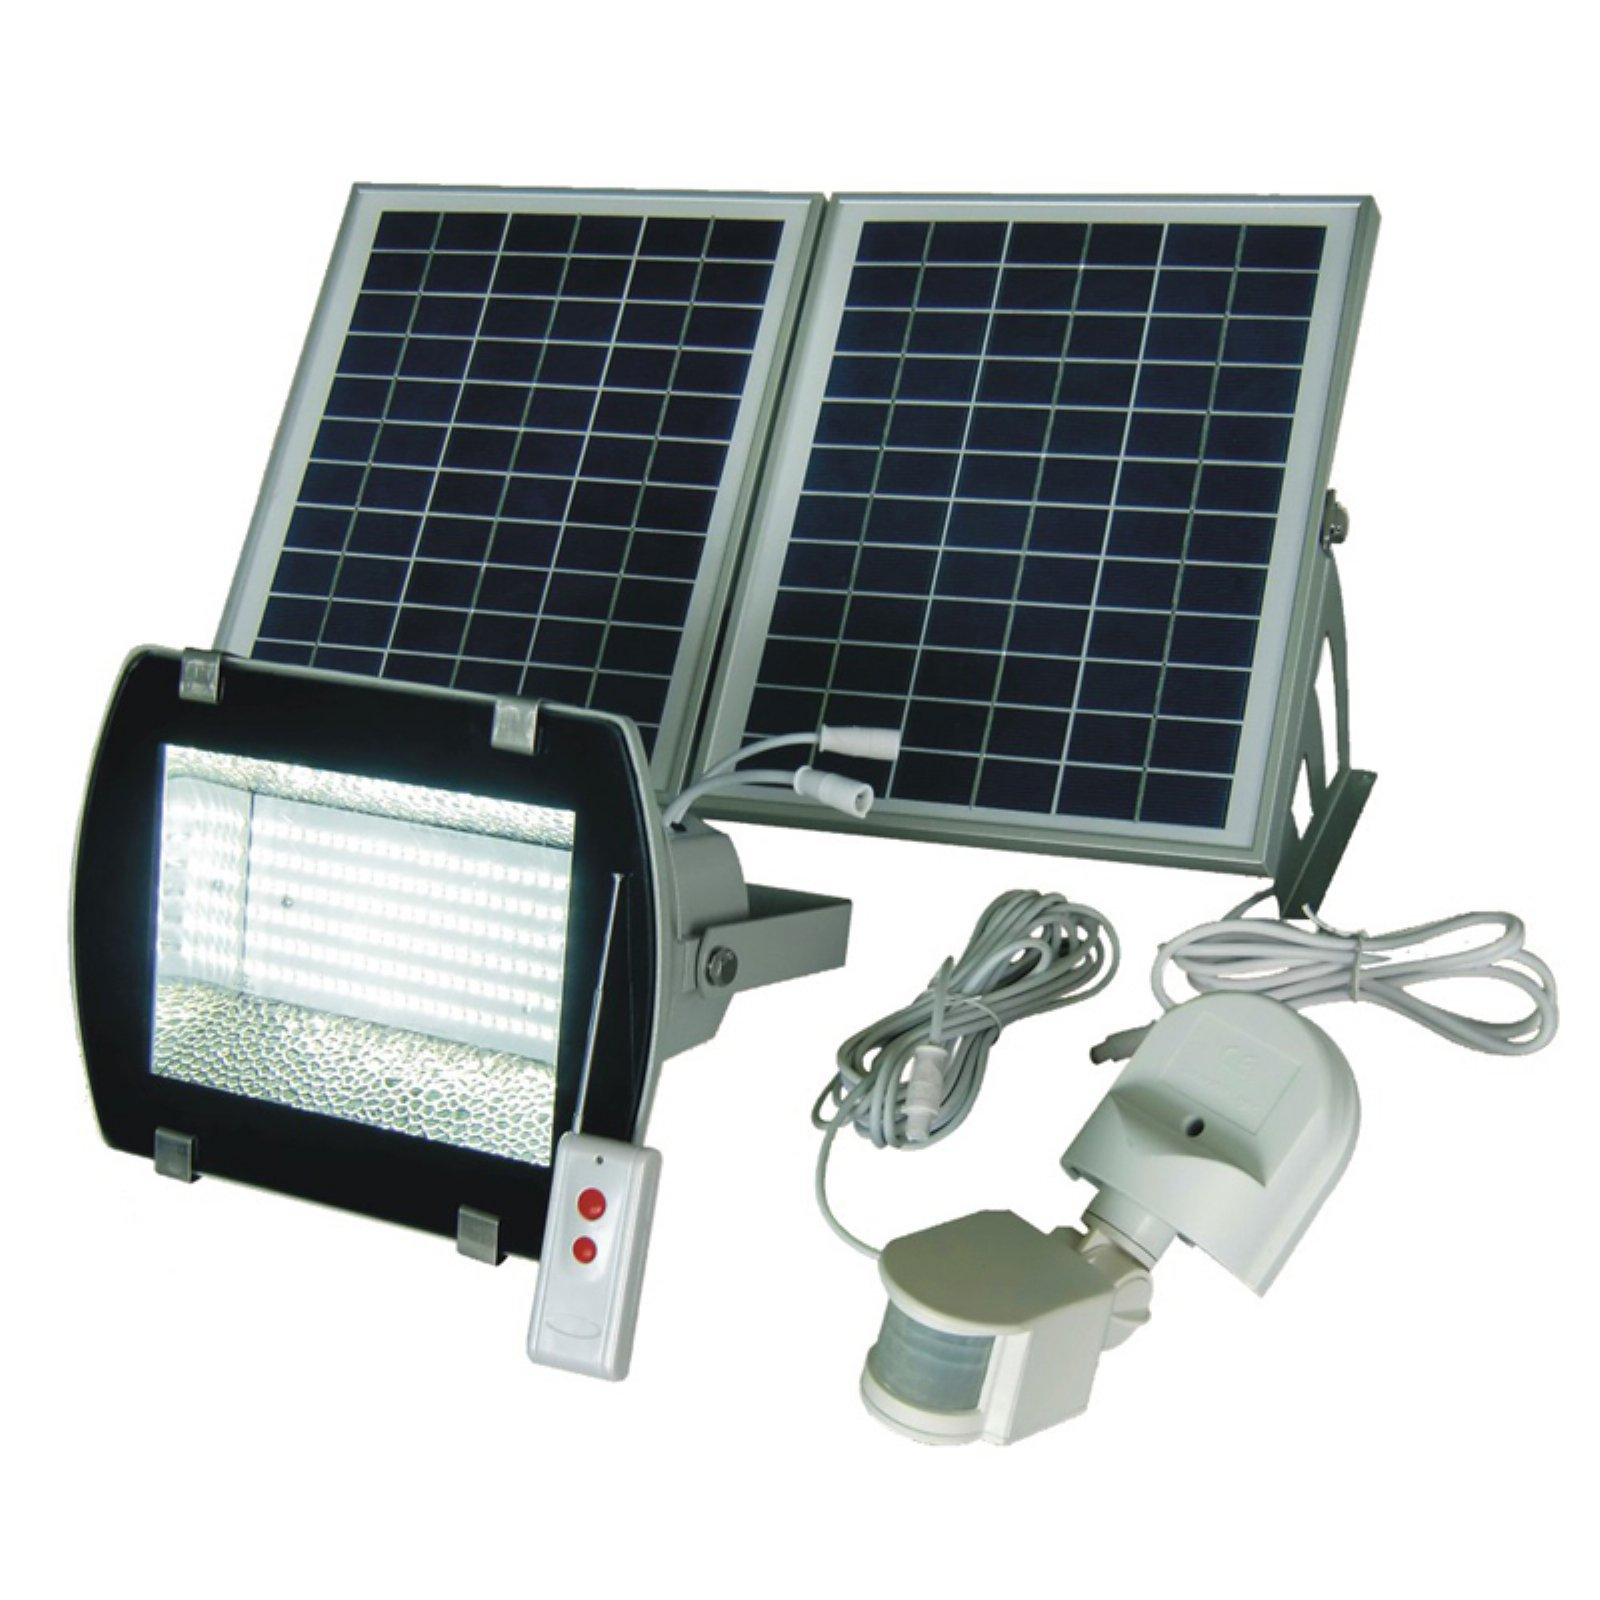 Solar Goes Green SGG-F156-2R Super Bright 156 SMDs Solar Powered Flood Light with Remote... by Solar Goes Green